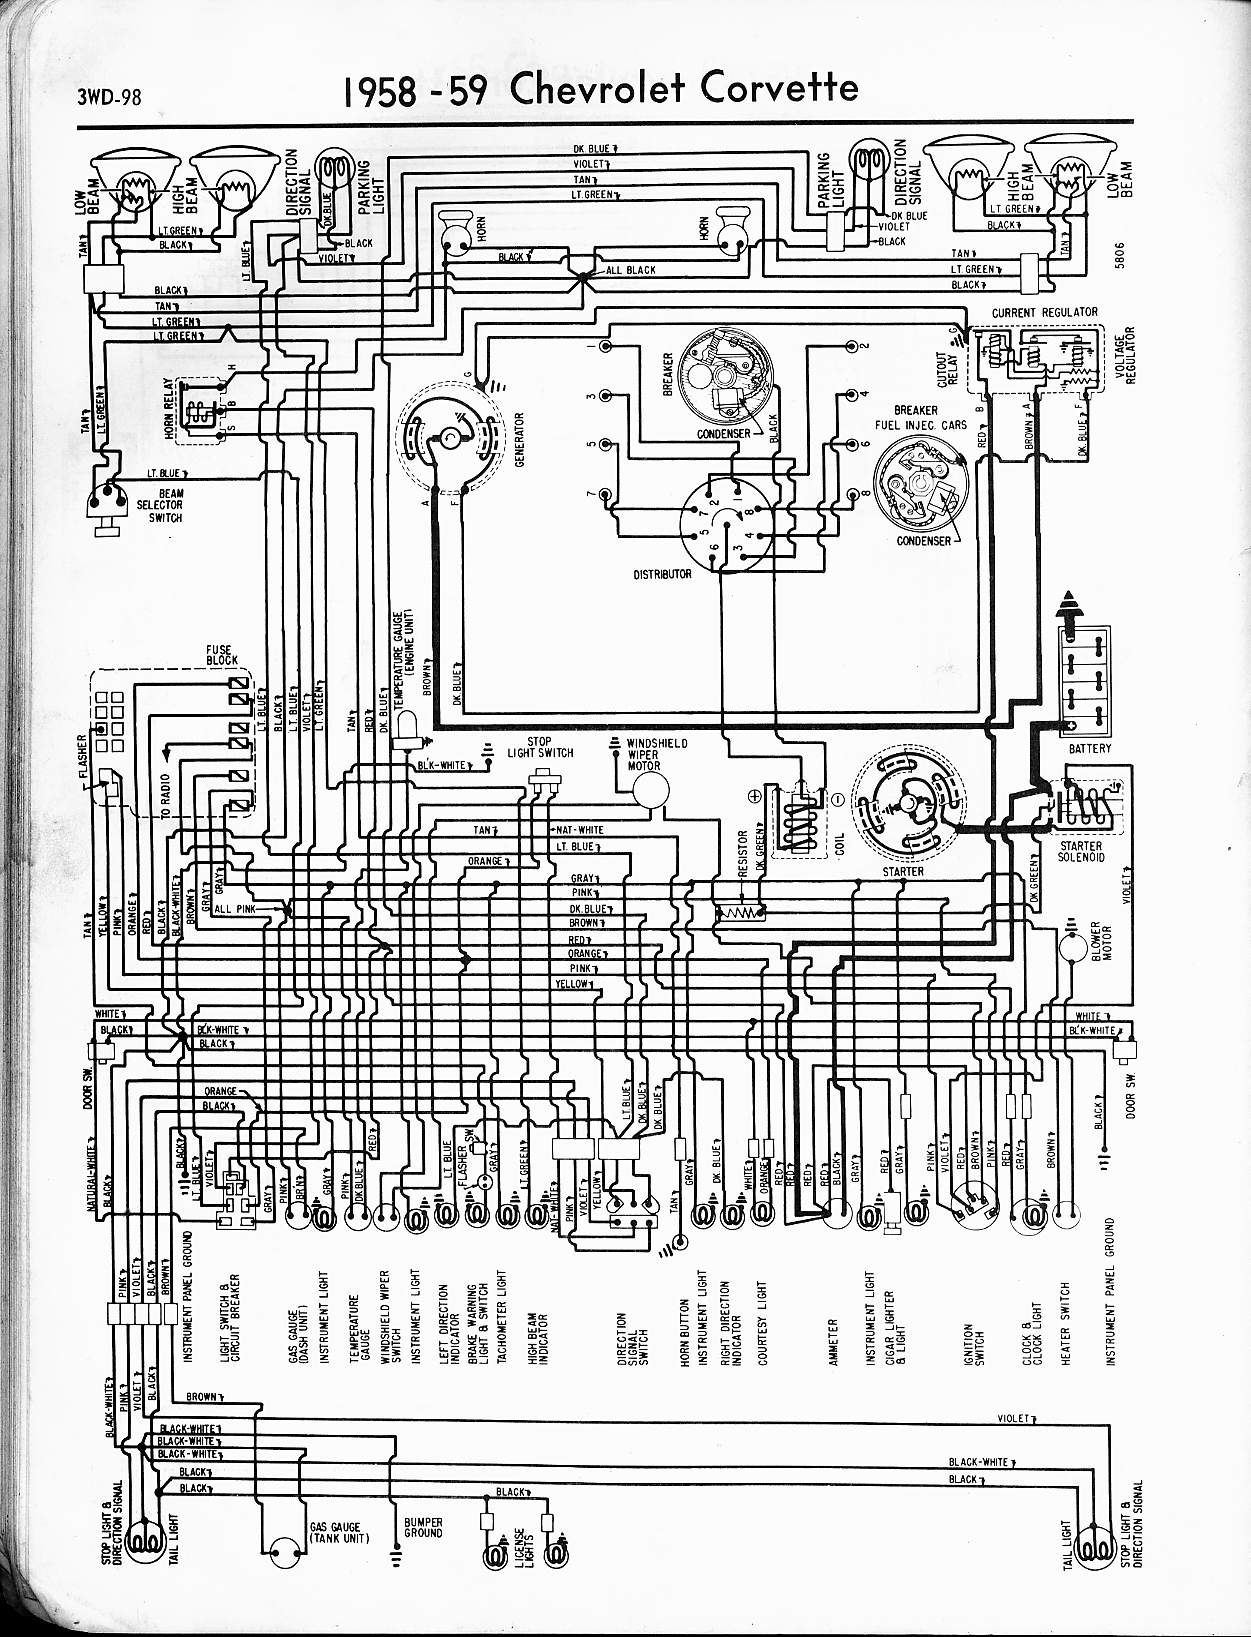 MWireChev58_3WD 098 57 65 chevy wiring diagrams 58 corvette wiring diagram at soozxer.org